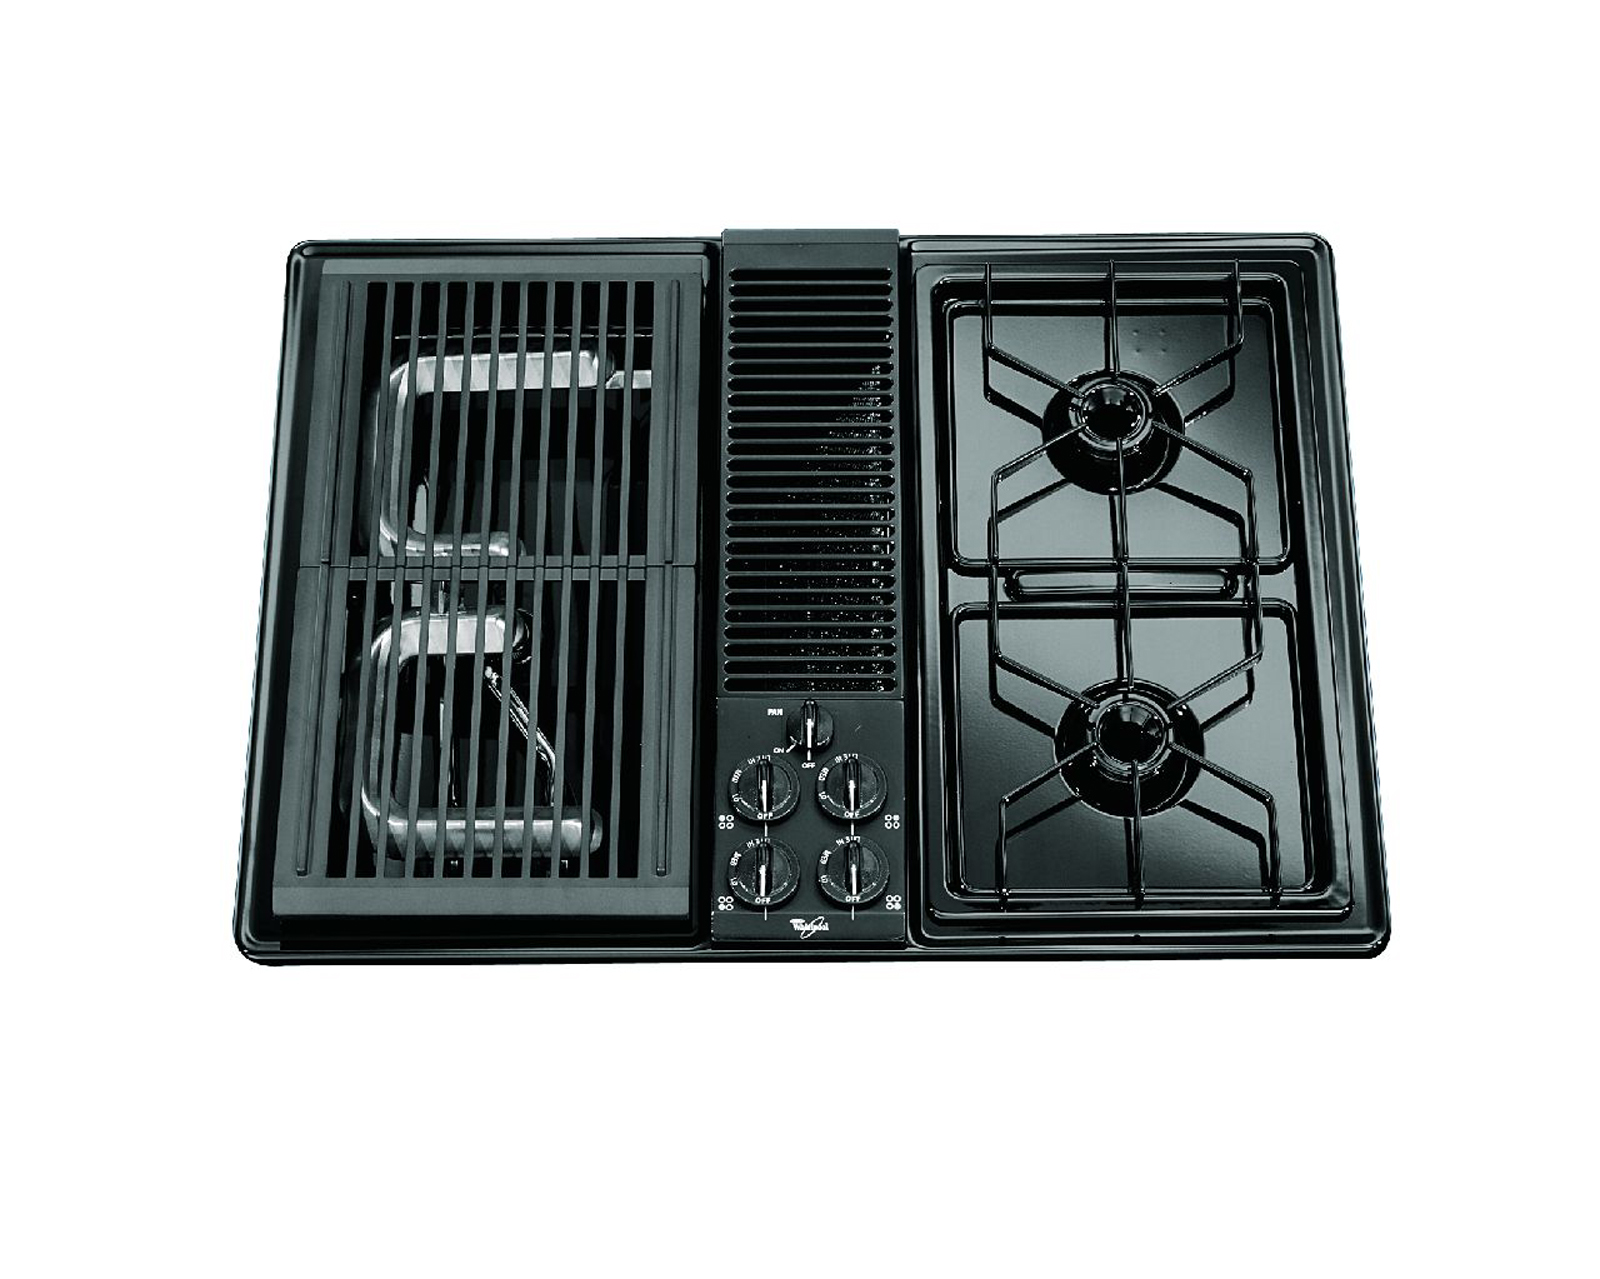 Whirlpool 30 Gas Cooktop with Downdraft